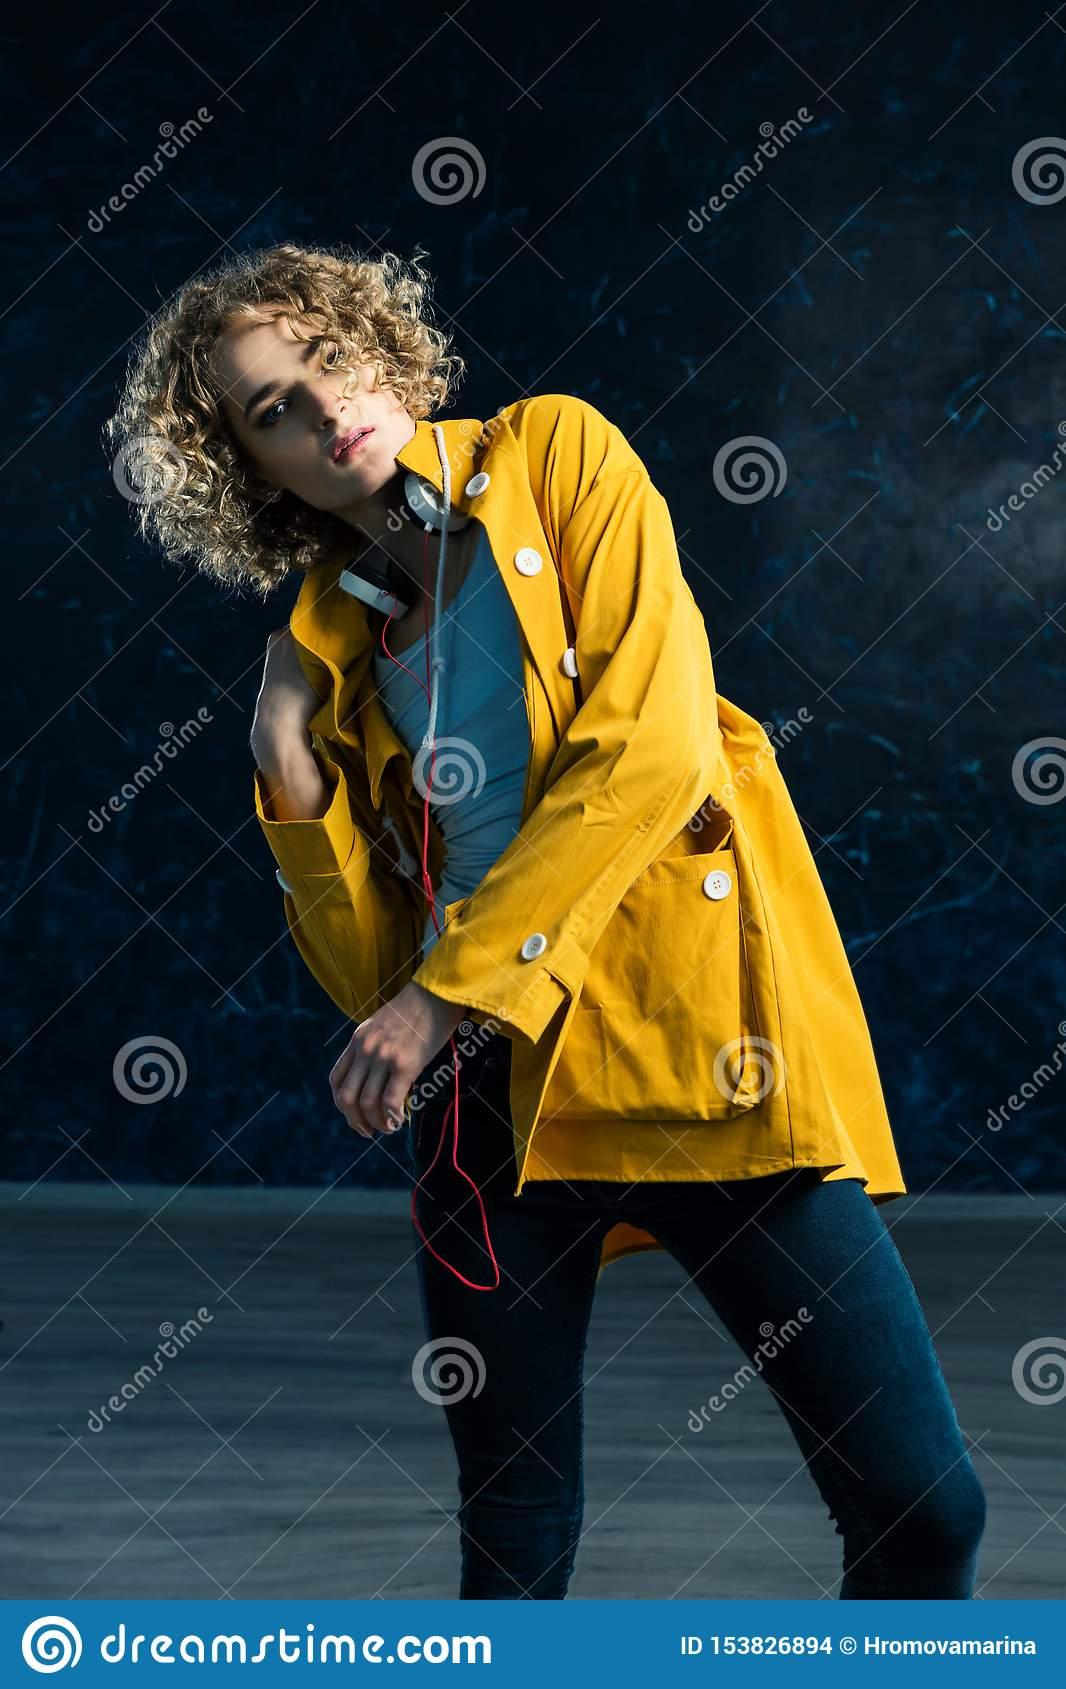 A young guy with a surfer`s hair in a yellow jacket and headphones is dancing against